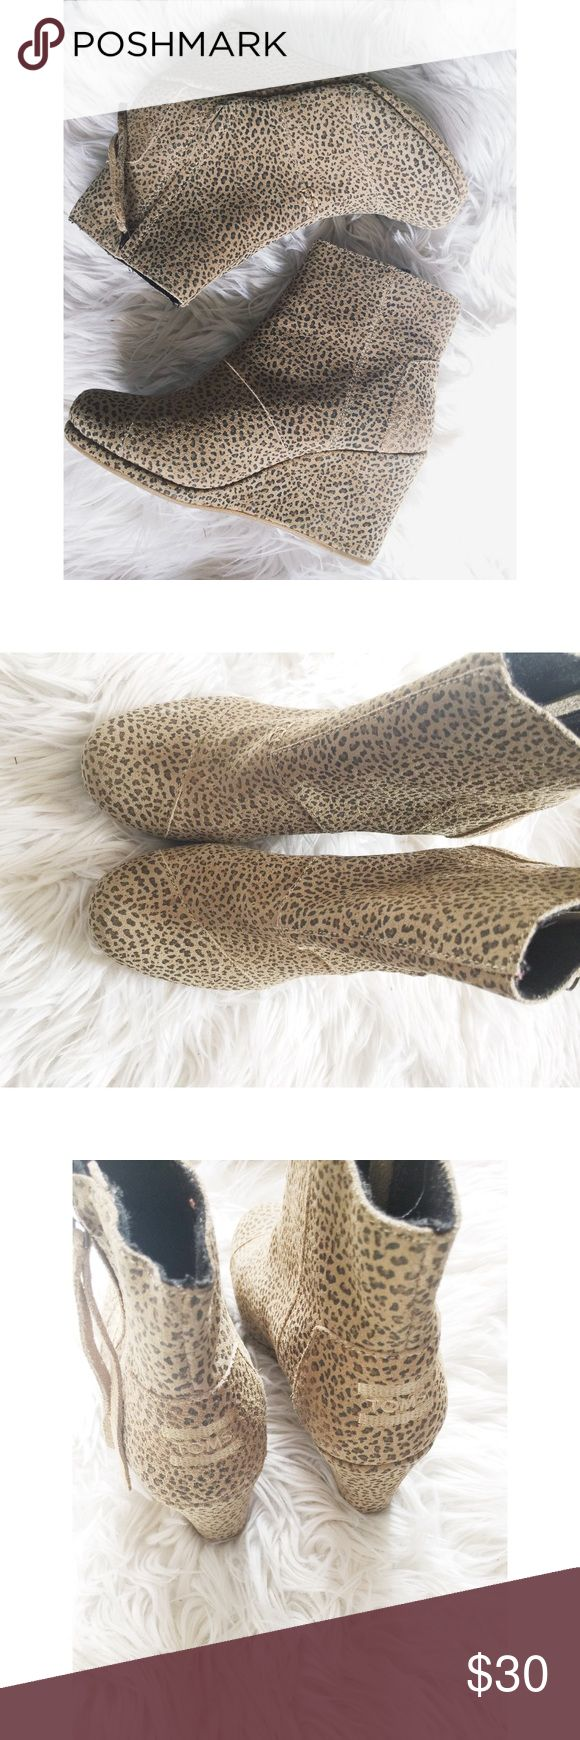 TOMS Desert Sand Wedge Booties TOMS Desert Sand Wedges.  Cheetah print.  Women's size 8.  Good used condition.  No box. Toms Shoes Ankle Boots & Booties